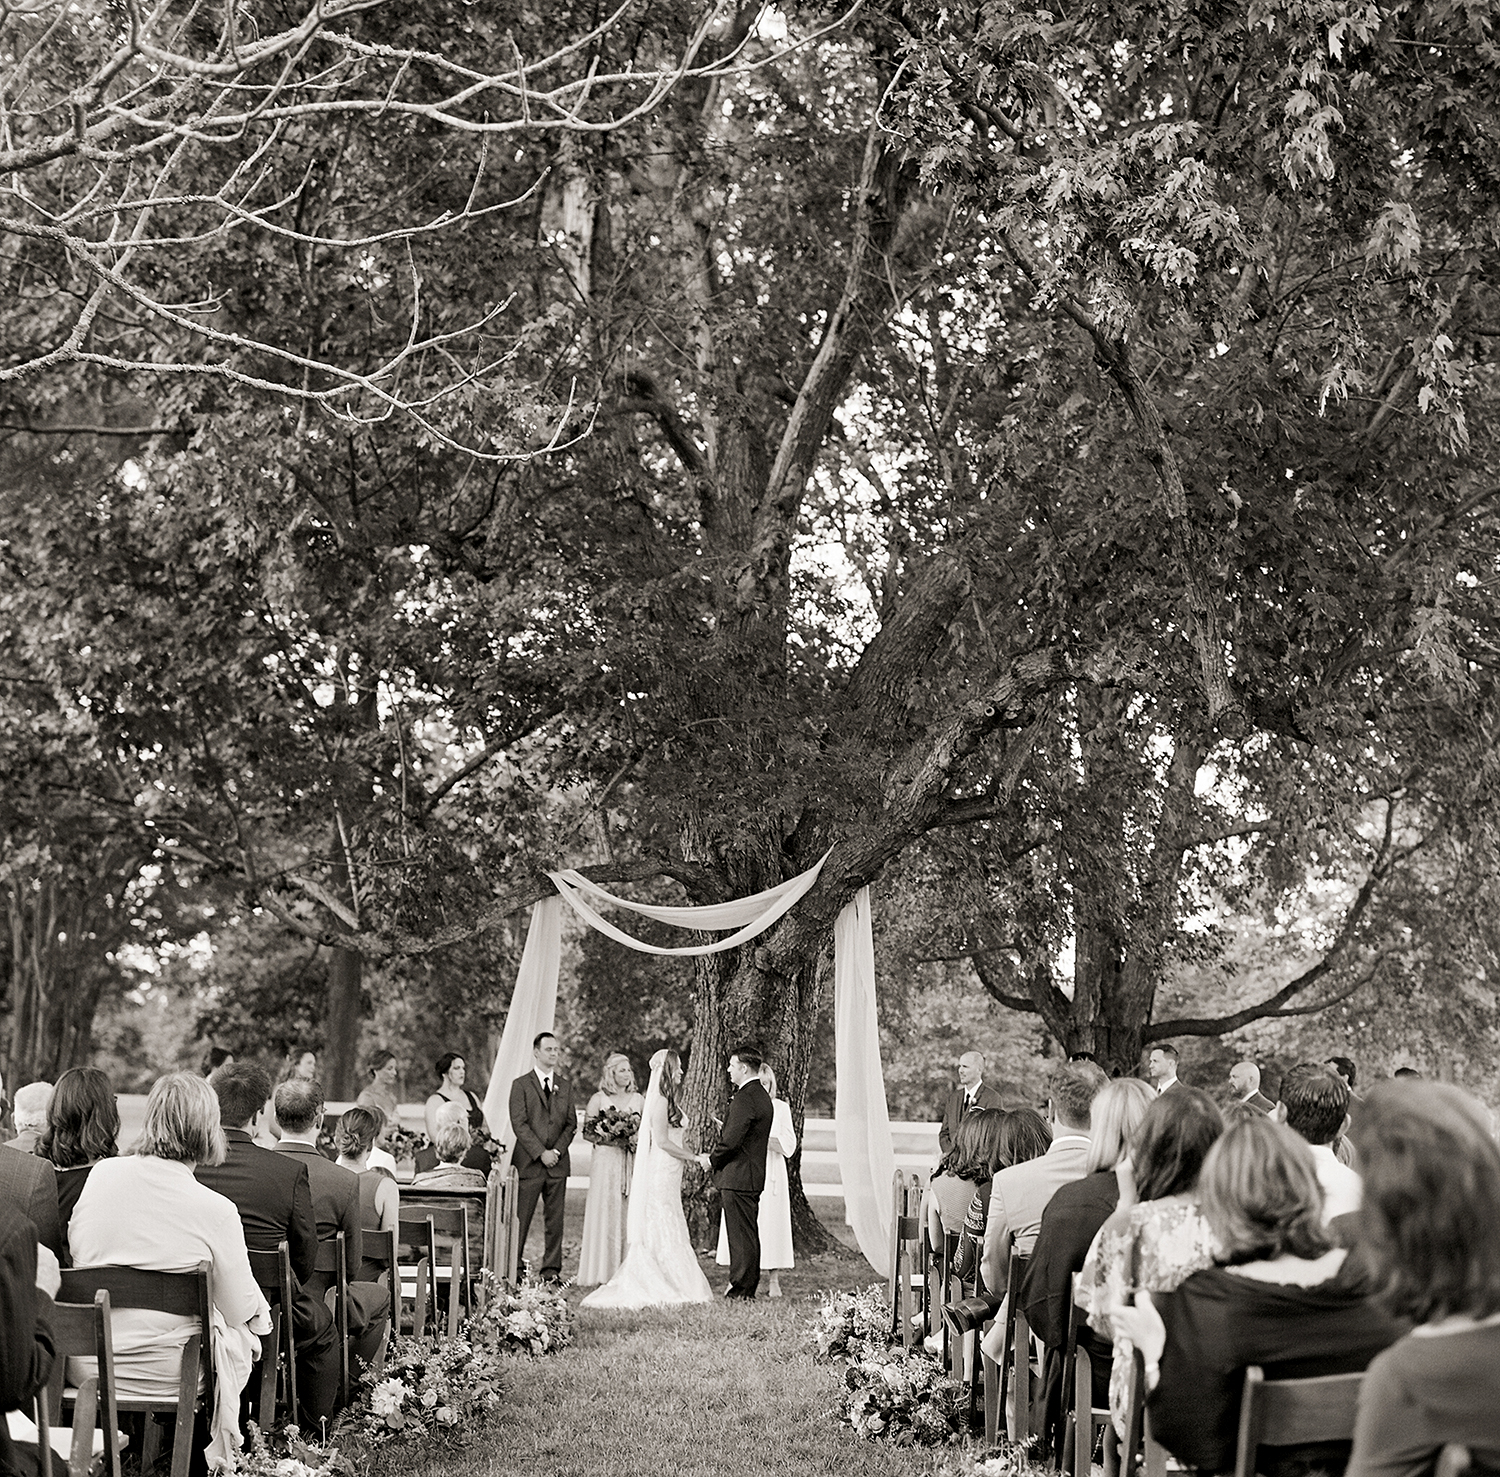 jen geoff wedding ceremony under trees